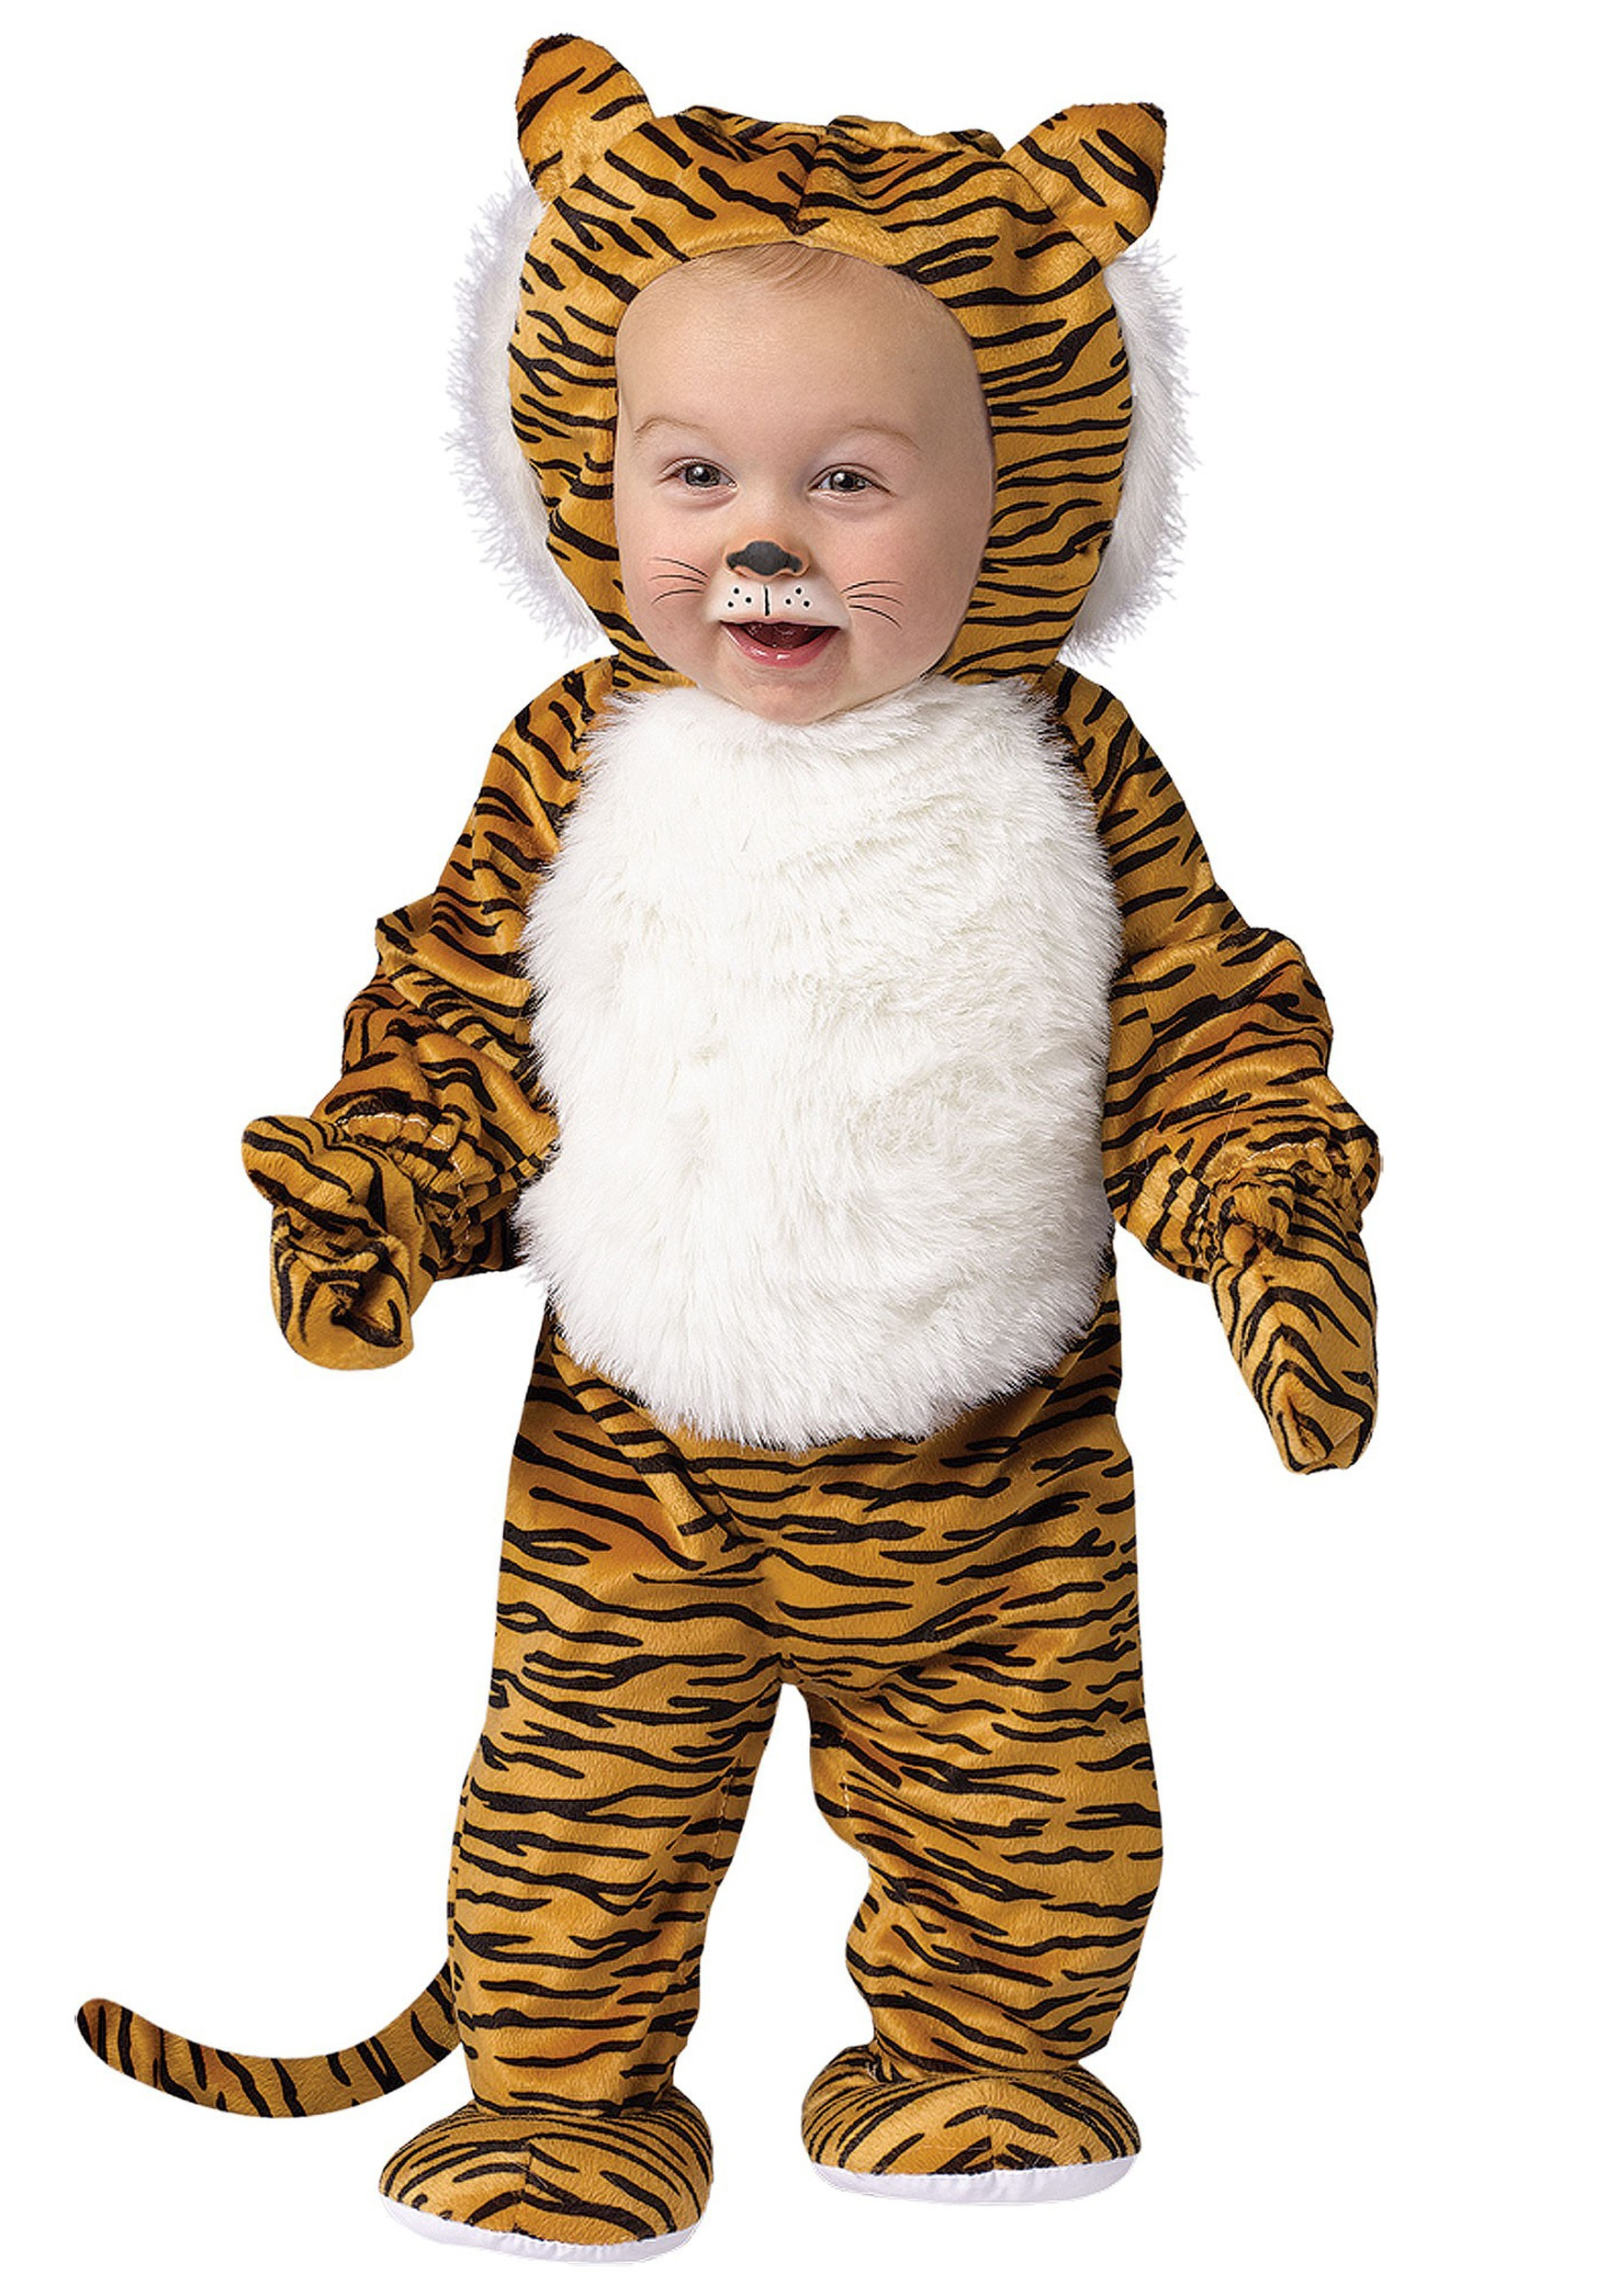 Toddler Cuddly Tiger Costume  sc 1 st  Halloween Costumes : tony the tiger costumes  - Germanpascual.Com